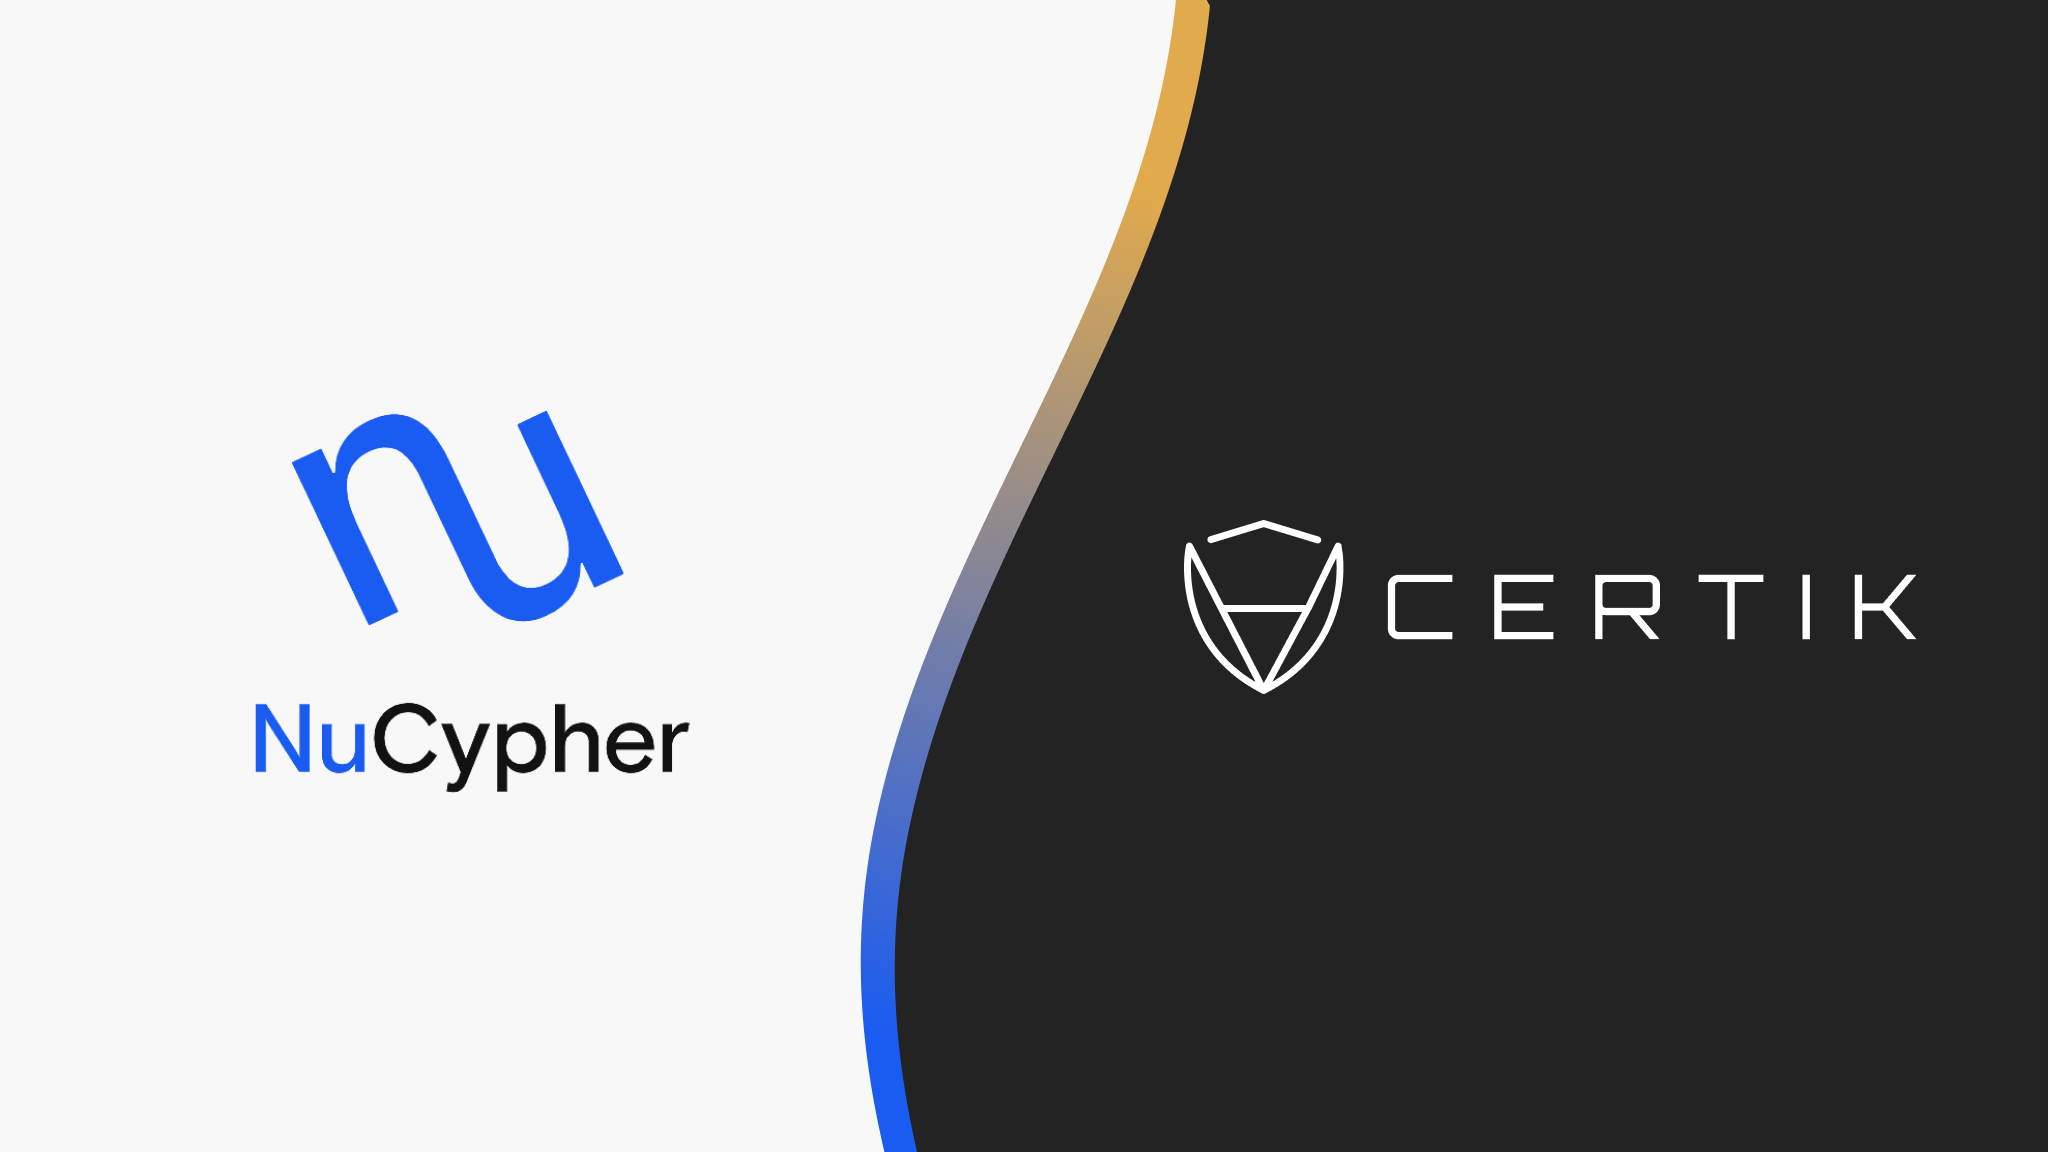 CertiK Partners with NuCypher